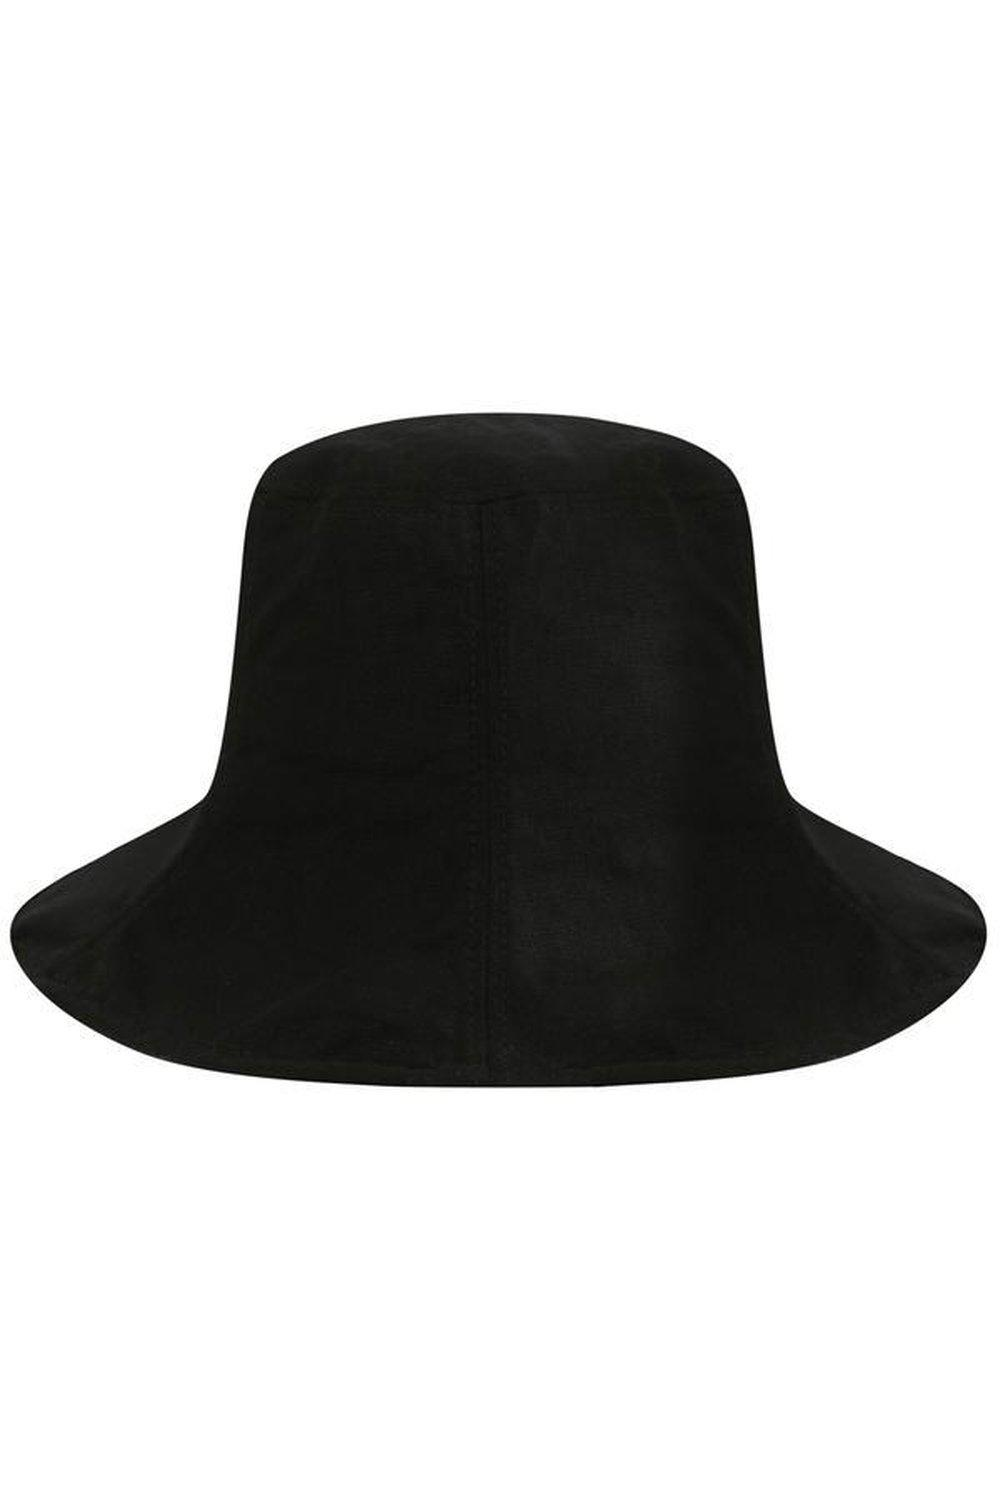 Everyday Hat / Black | Wellington Factory | Mad About The Boy